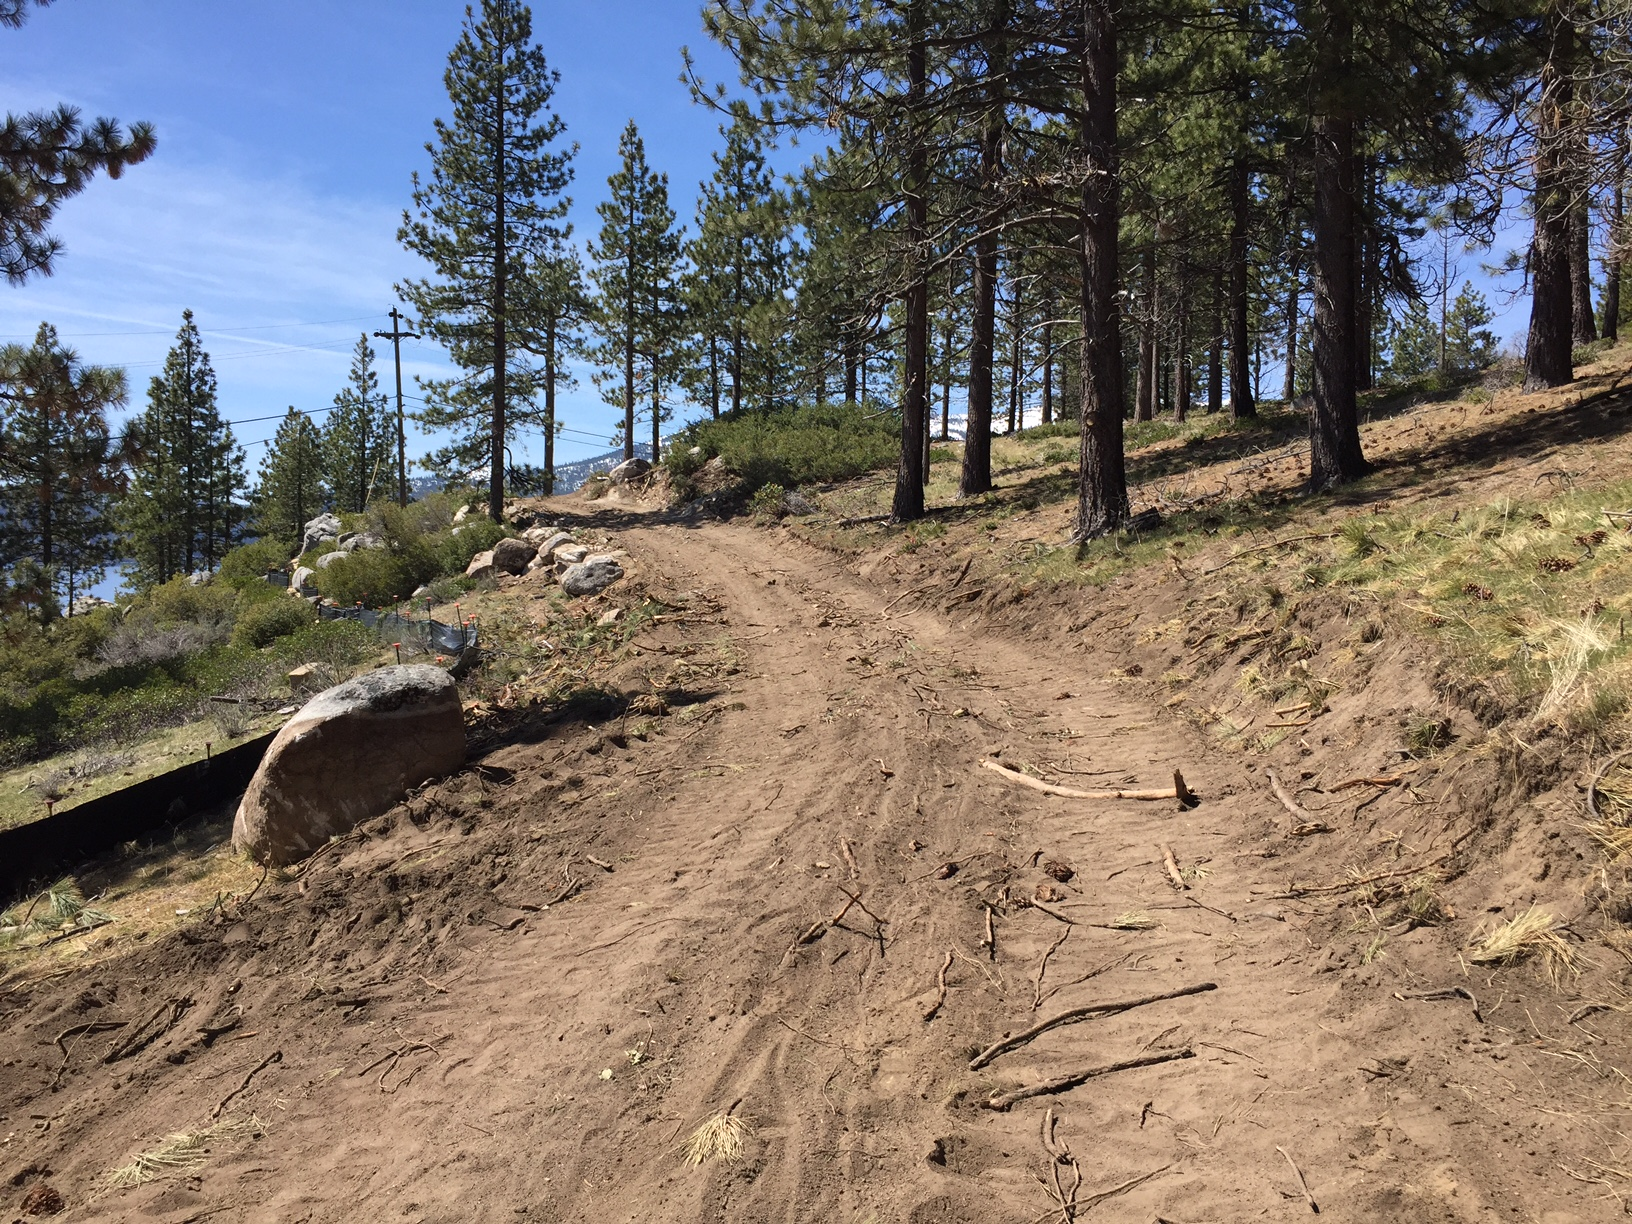 Mountain side Path Grading